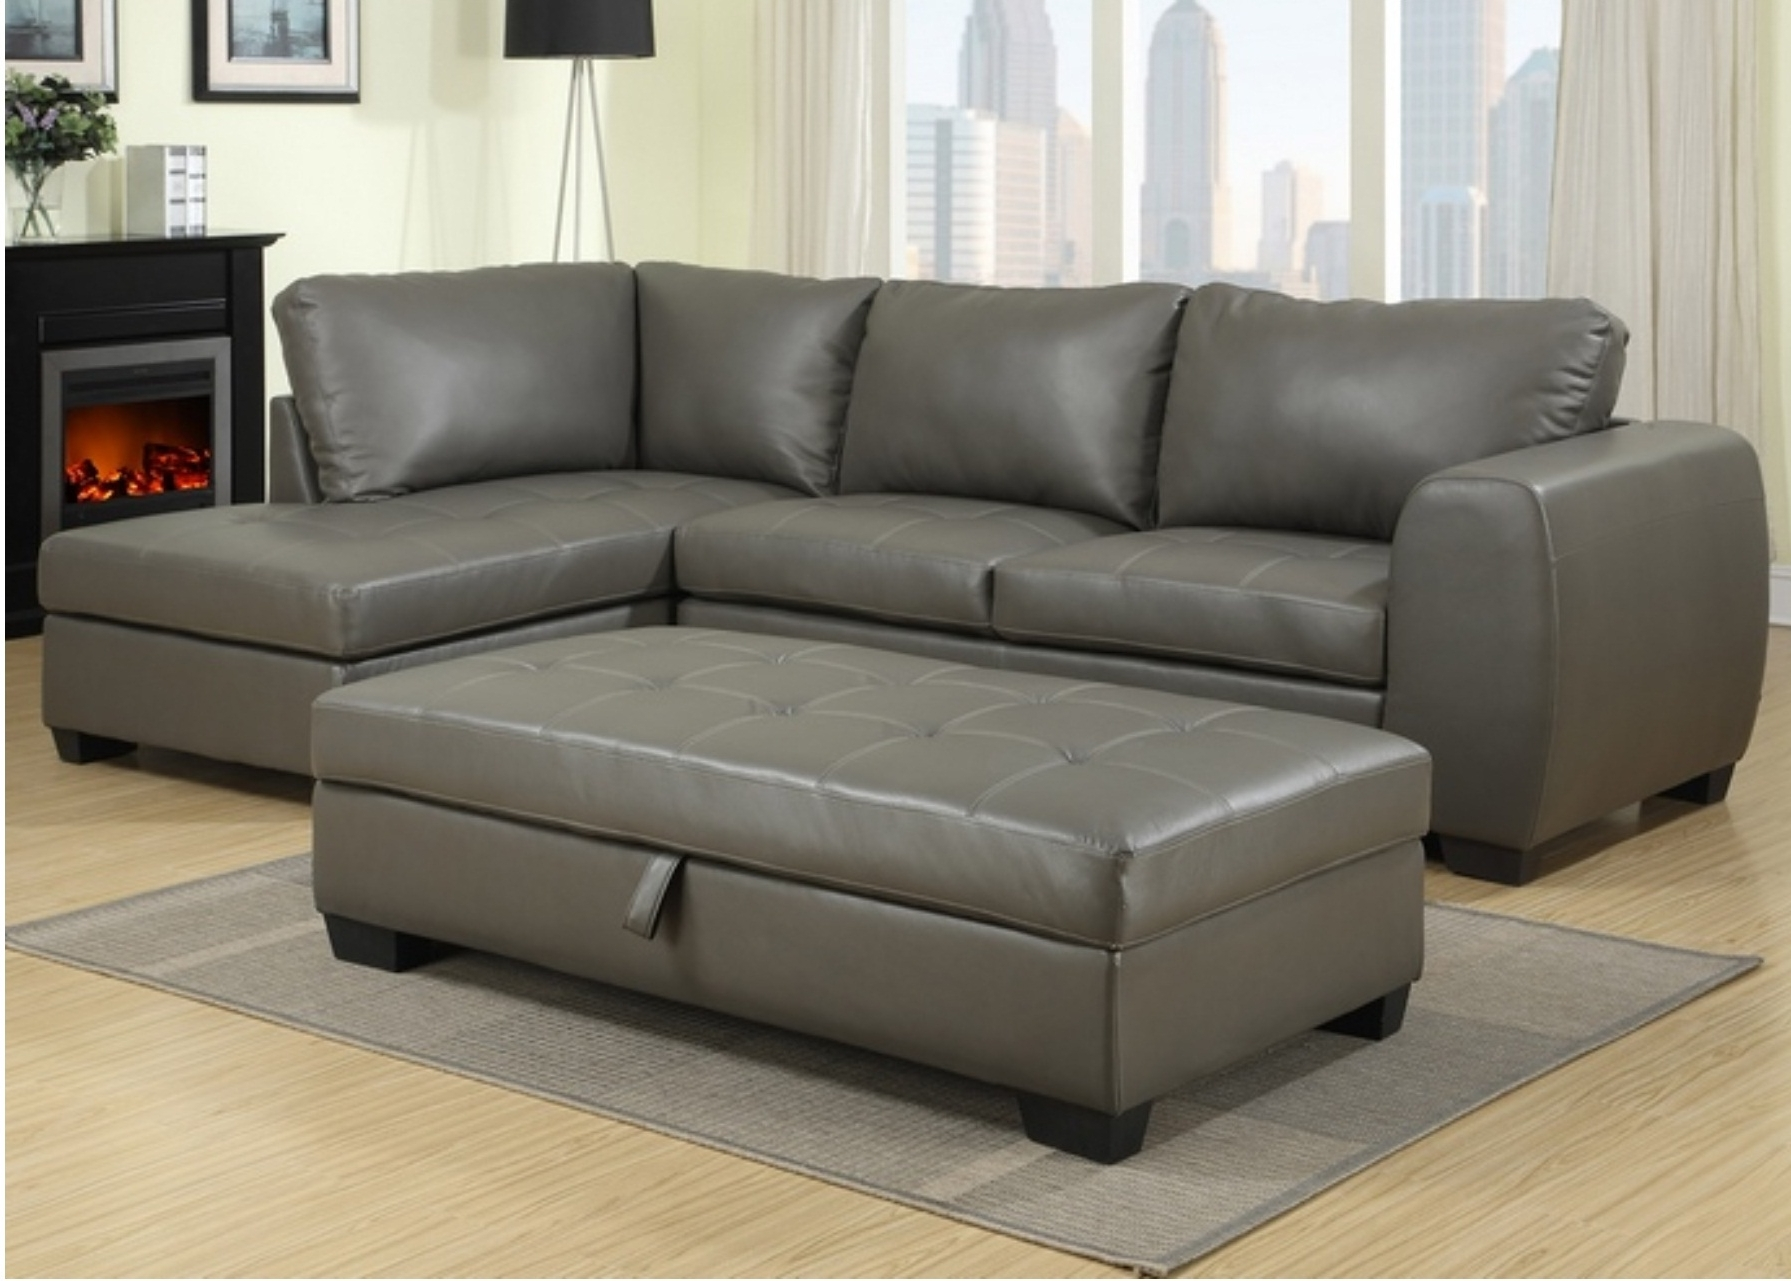 2018 Sectional Sofas At Calgary Within Sectional Couch Bluetonrniture Sets Sofa Inches Day Fiance (View 1 of 20)